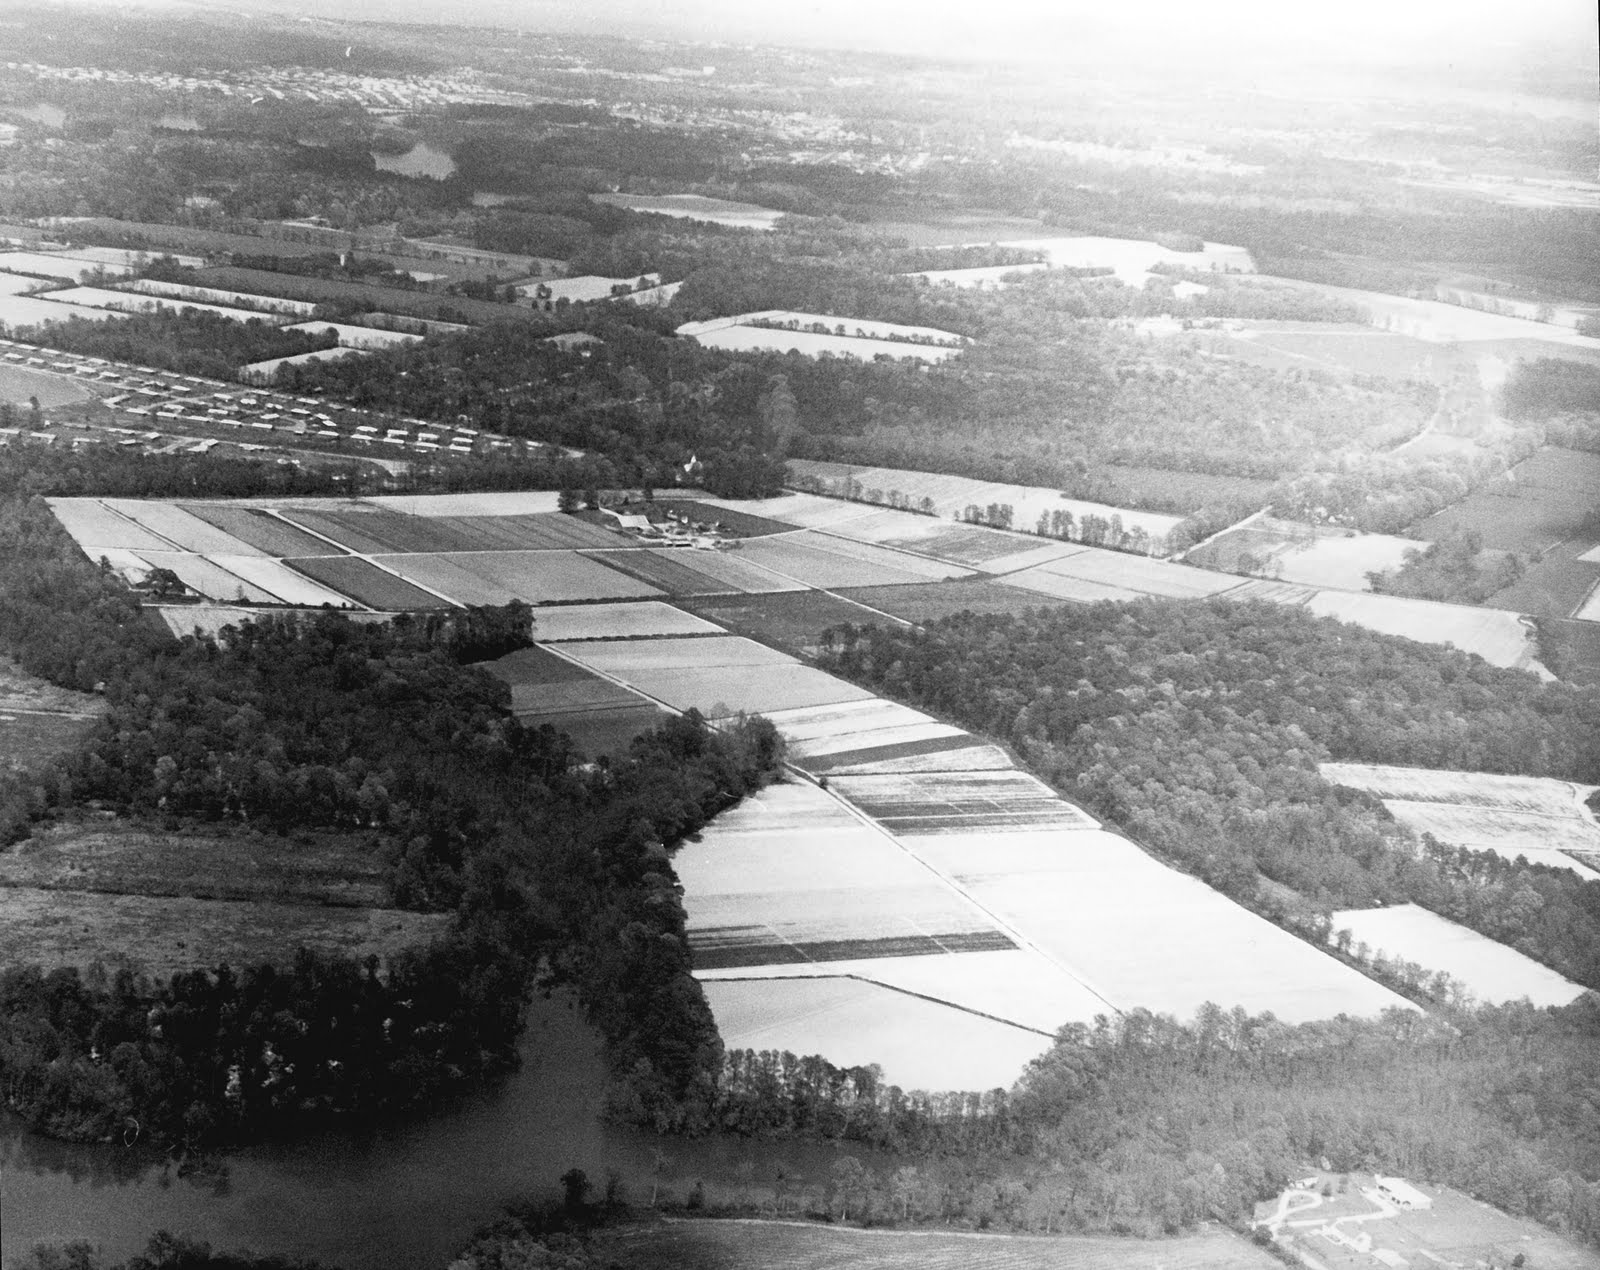 A 1962 aerial view of the